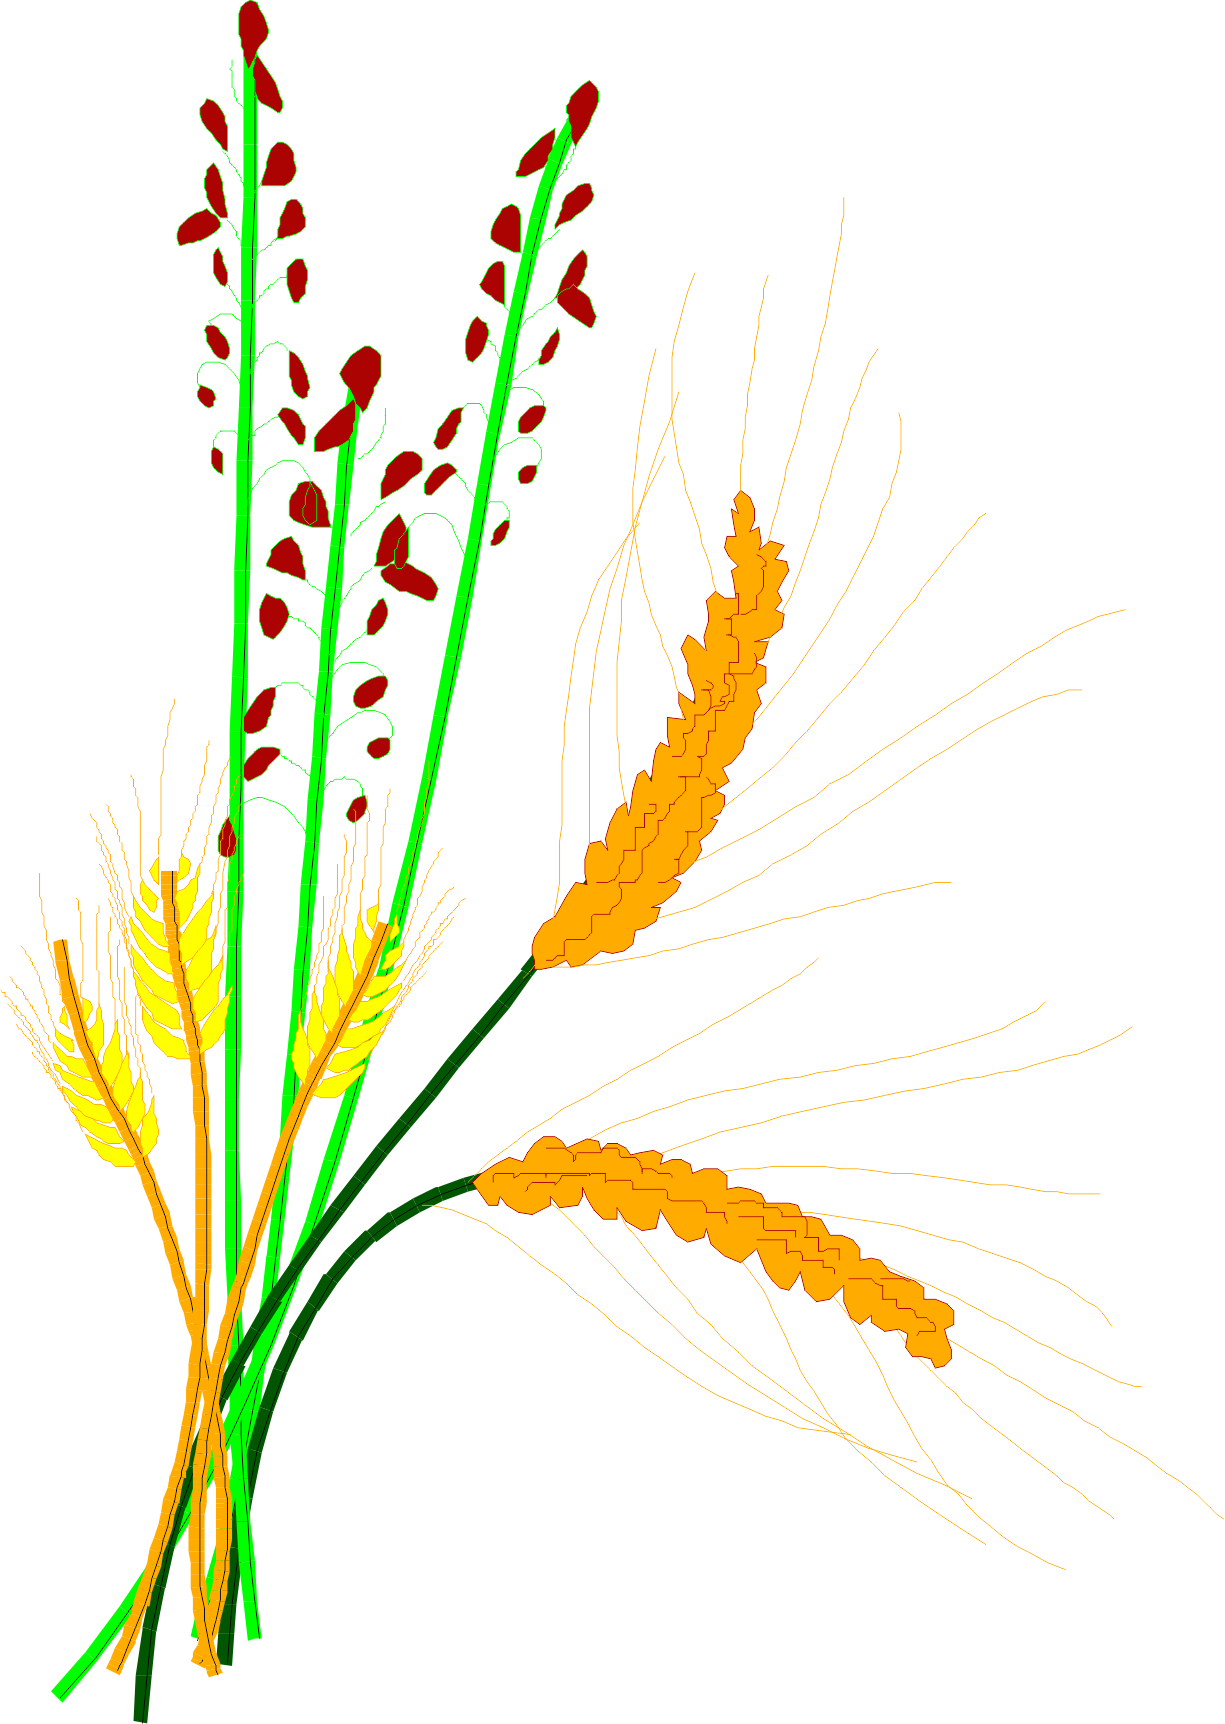 Grain clip art barley. Cereal clipart rice plant